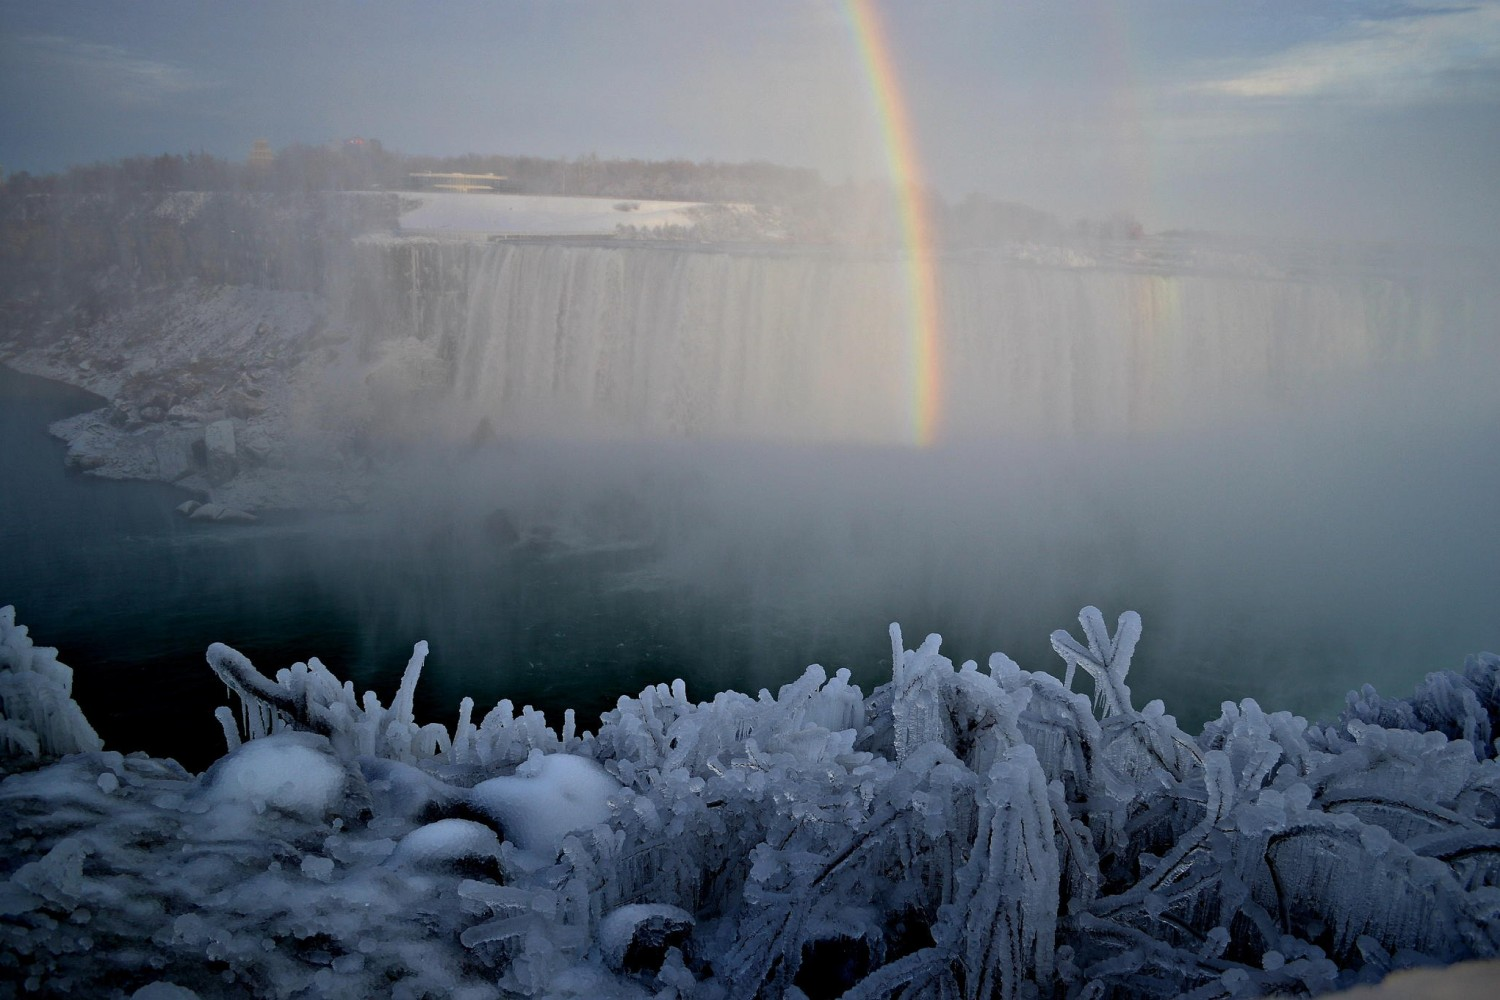 20 Spectacular Images of Frozen Niagara Falls